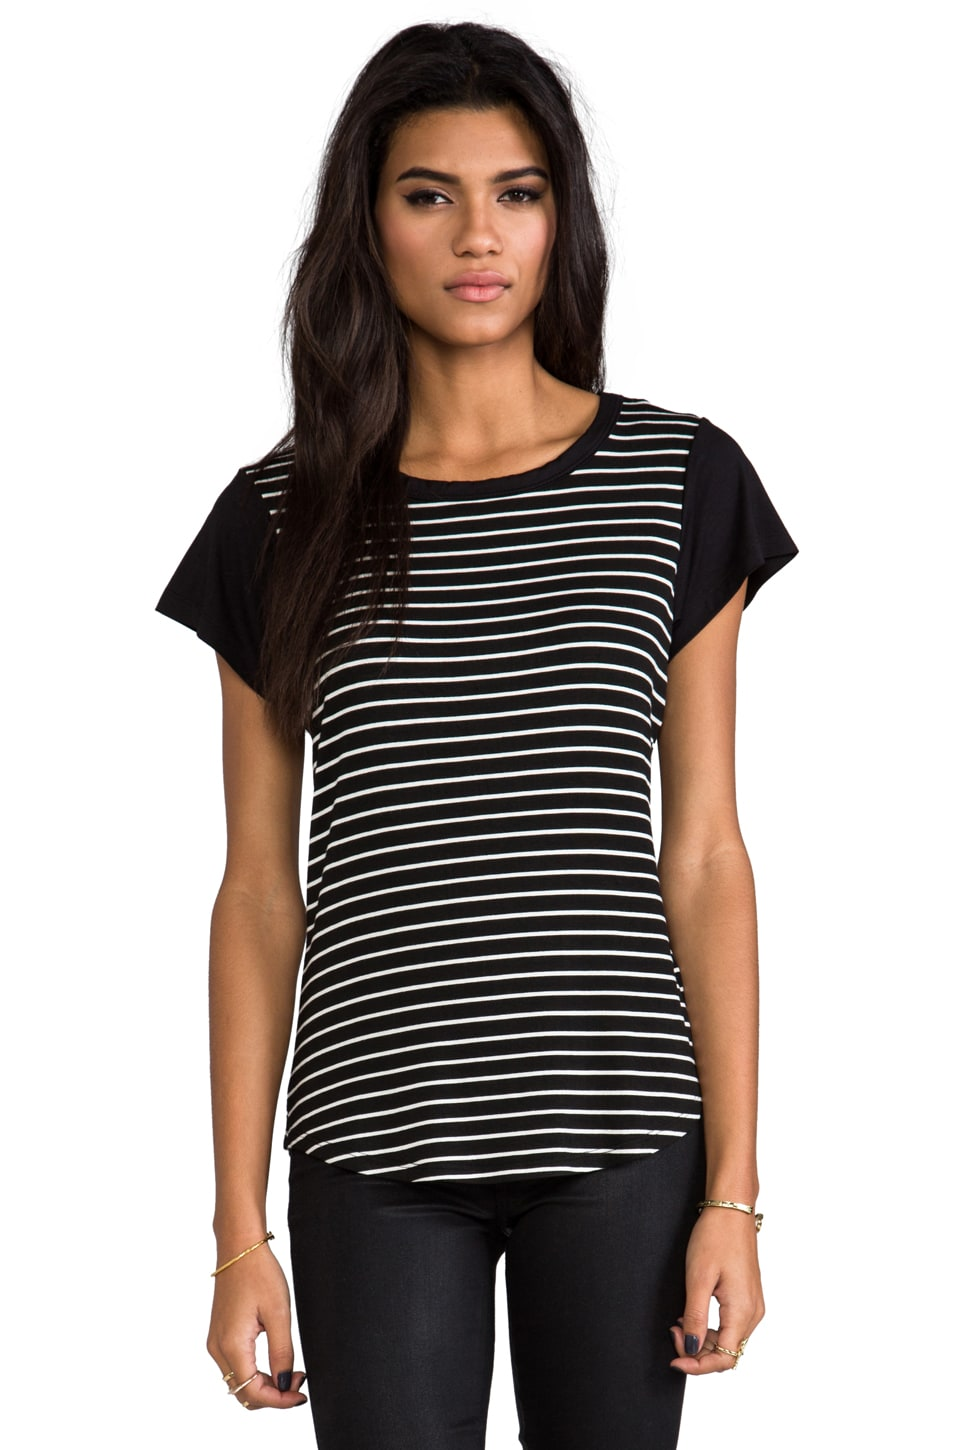 Kain Hurston Tee in Black with White & Black Stripes